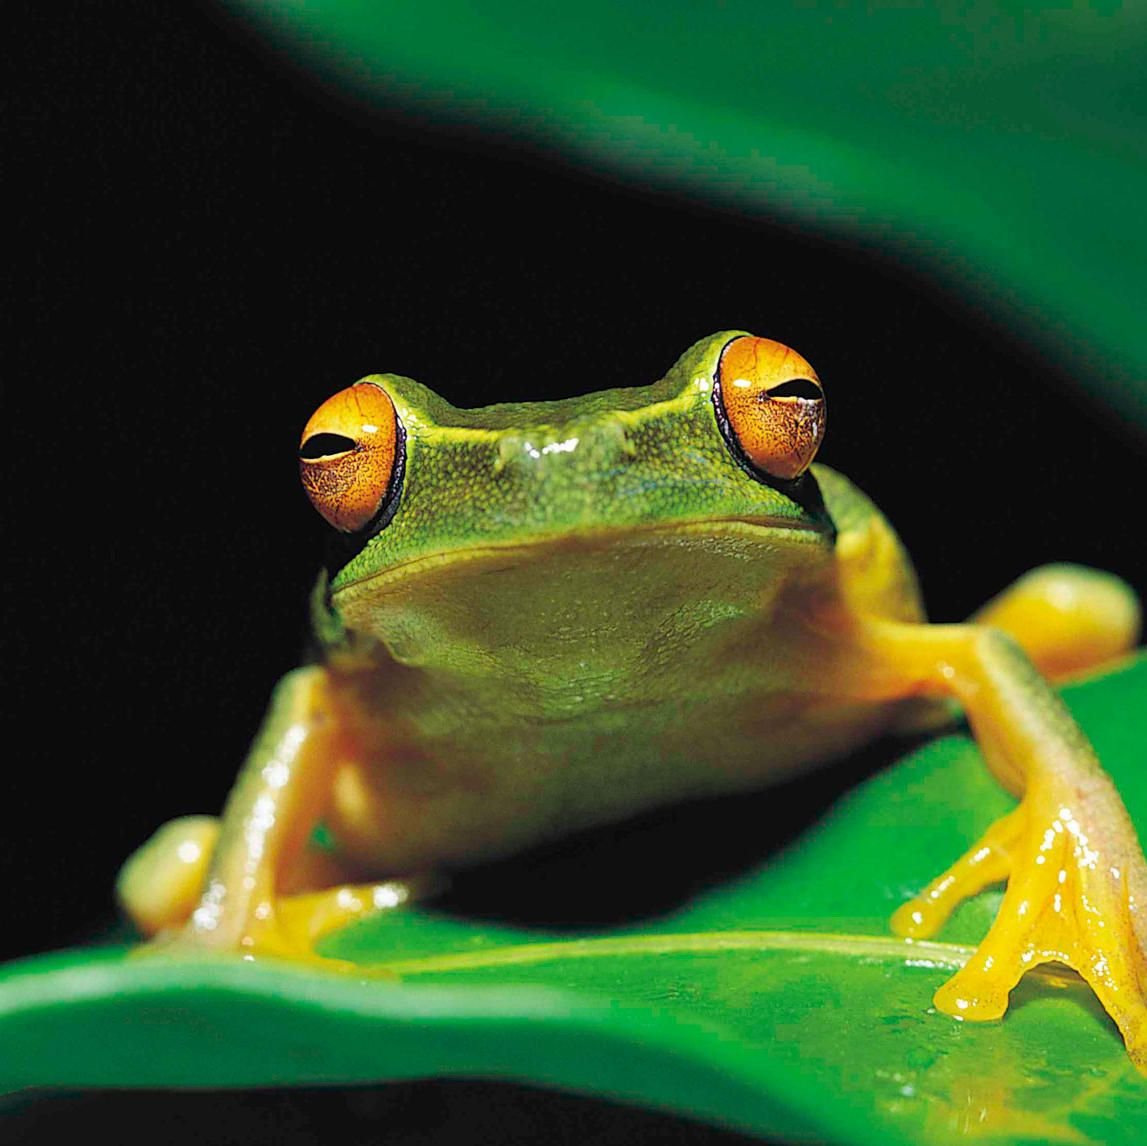 Discovery shows watch now for free amphibians